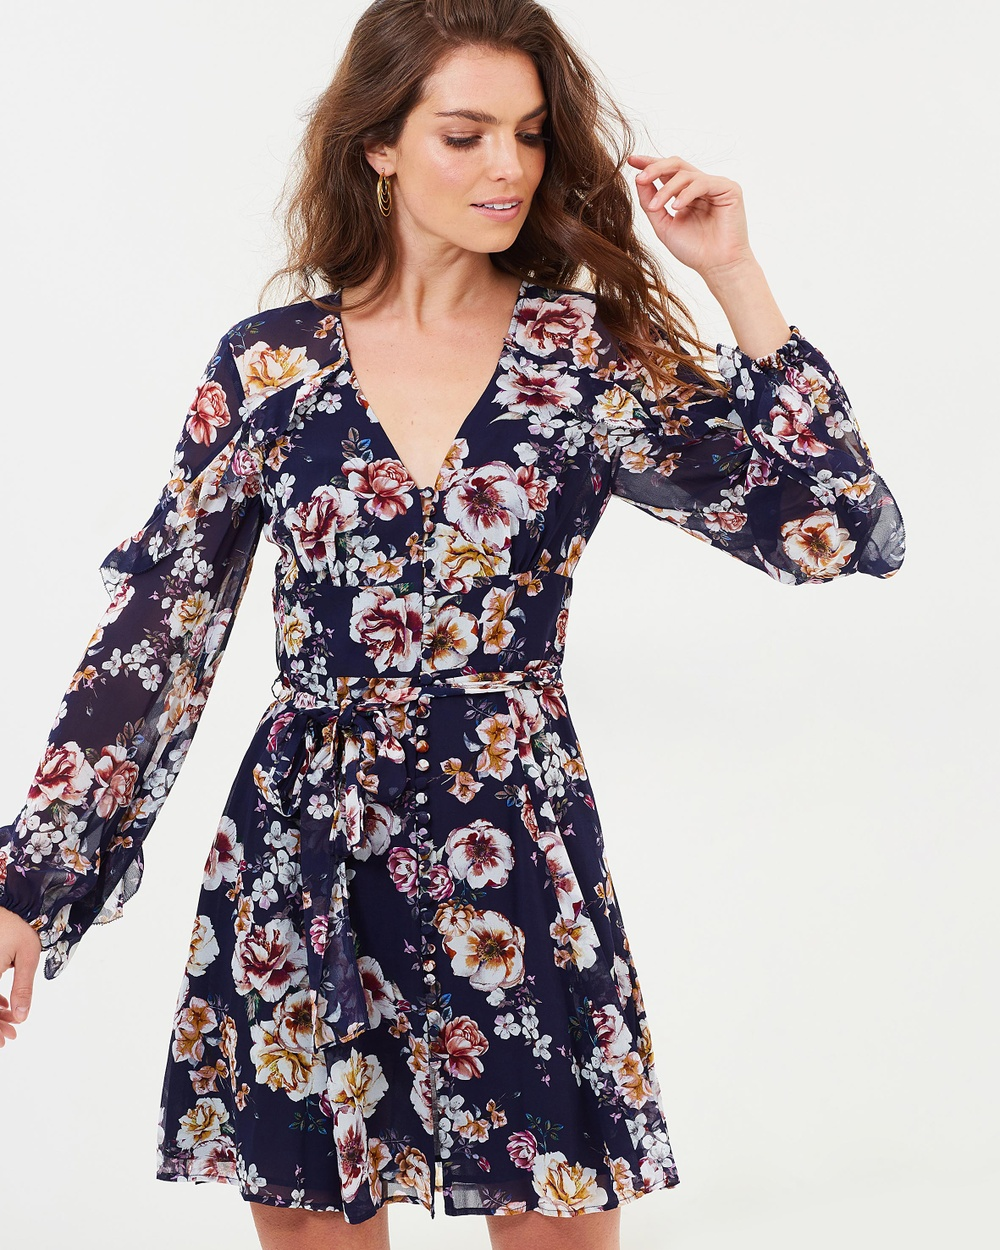 Nicholas Garden Rose Mini Blouson Dress Printed Dresses Navy Garden Rose Mini Blouson Dress